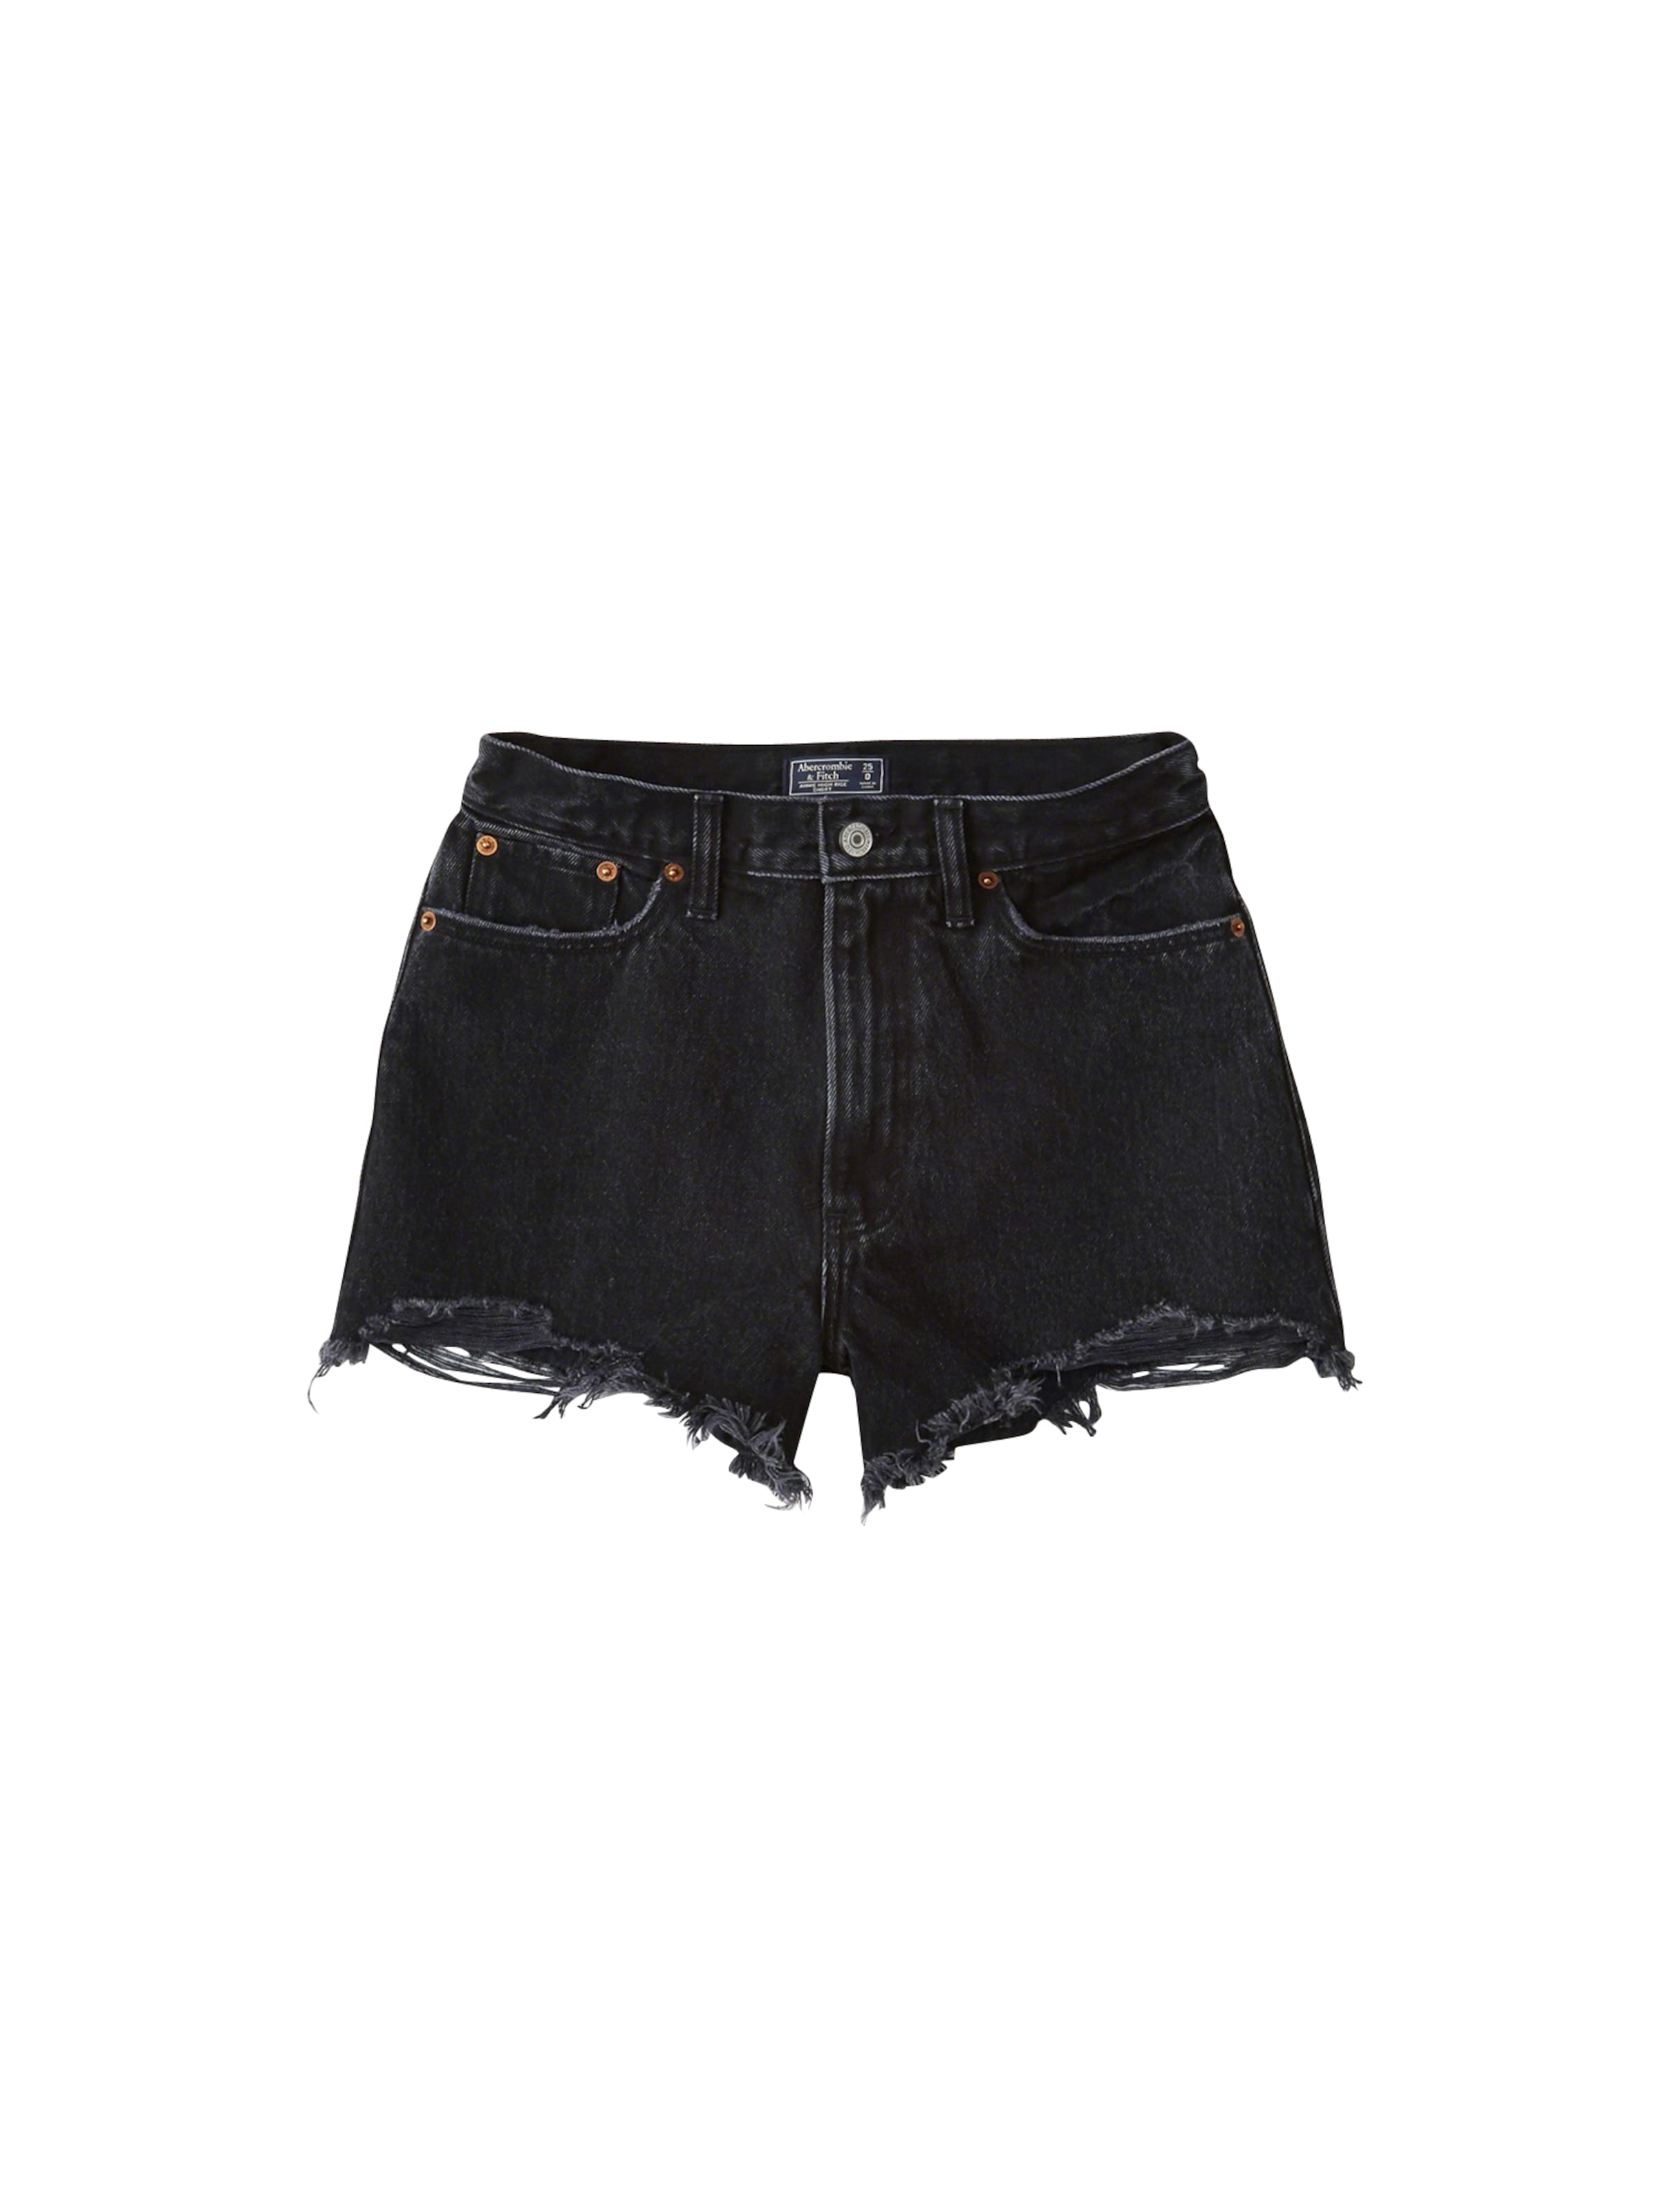 Hr' black 'sb19 Fitch Jeans Schwarz Rigid Abercrombieamp; In DI2EH9